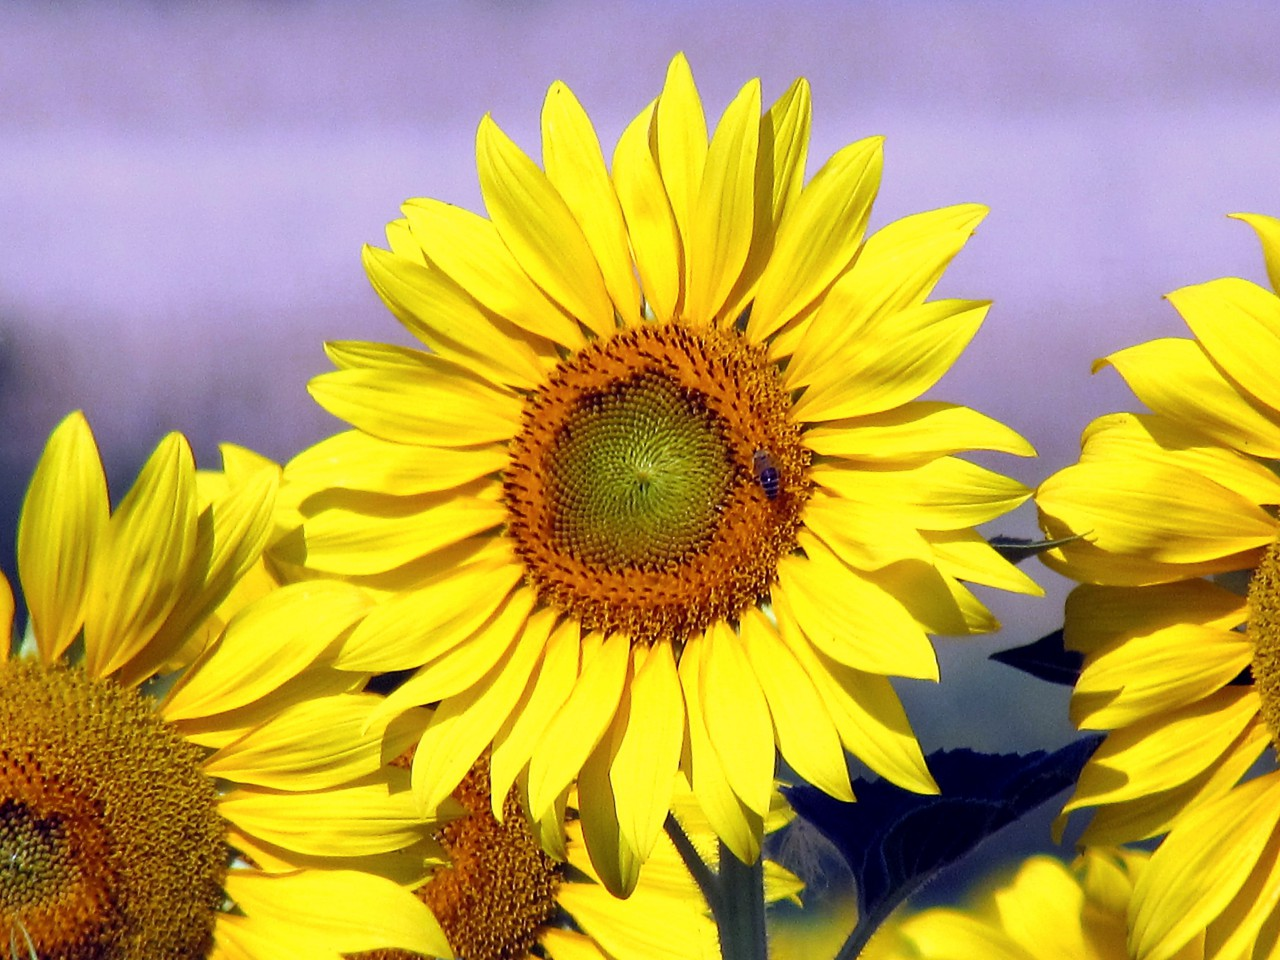 sunflower-sunflower-field-sunflowers-346007.jpg